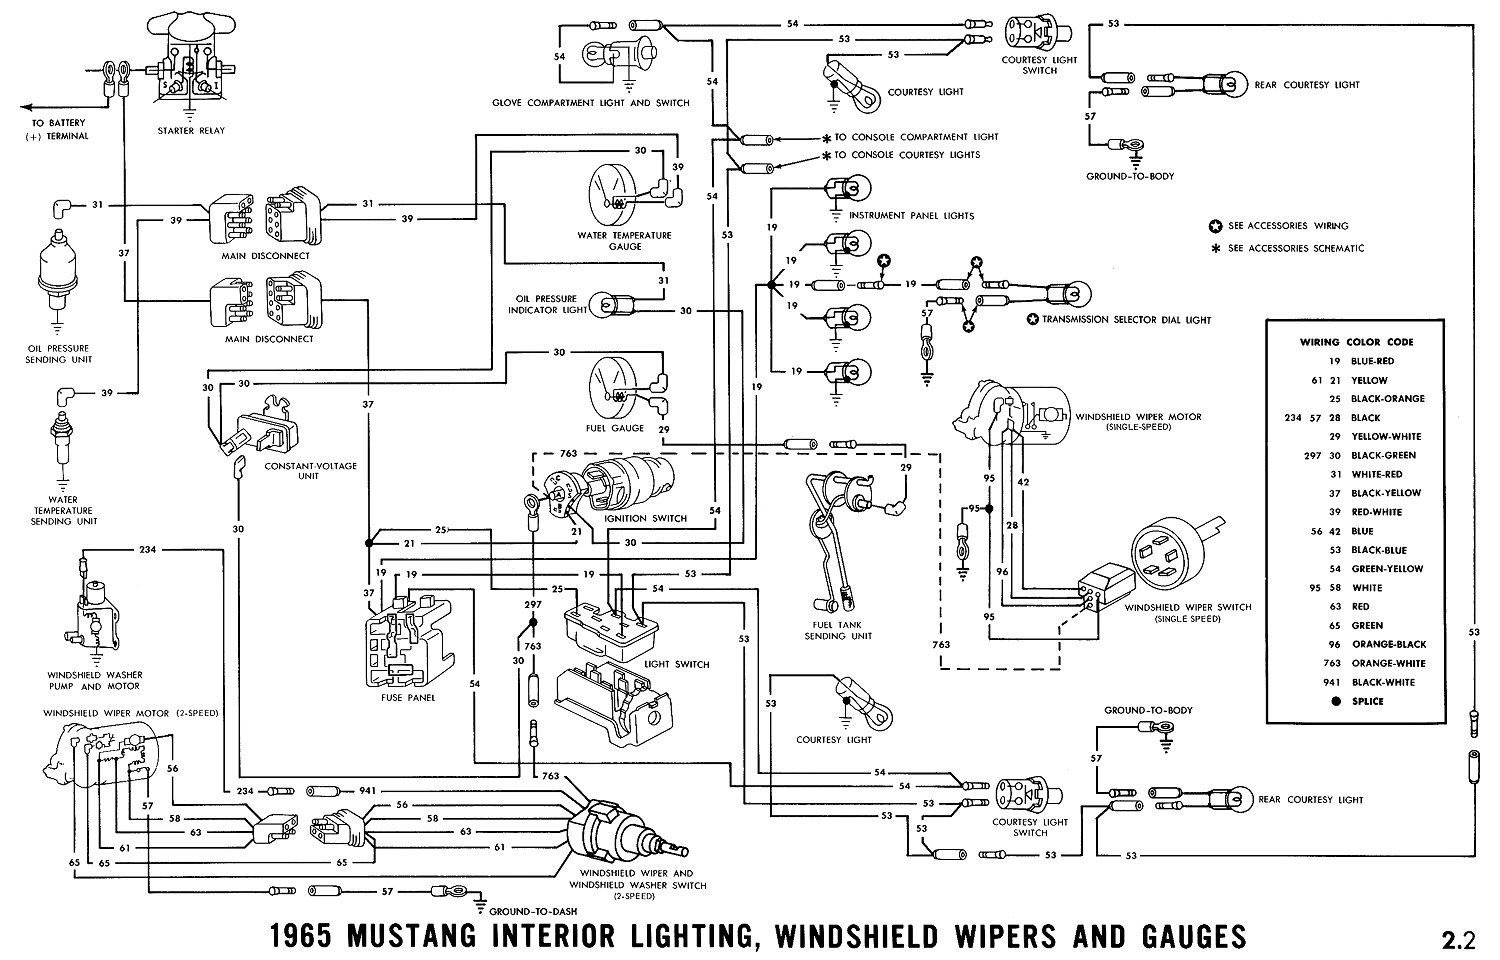 1965 Mustang Wiring Diagrams Average Joe Restoration Switch Outlet As Well Electrical Light Oil Pressure